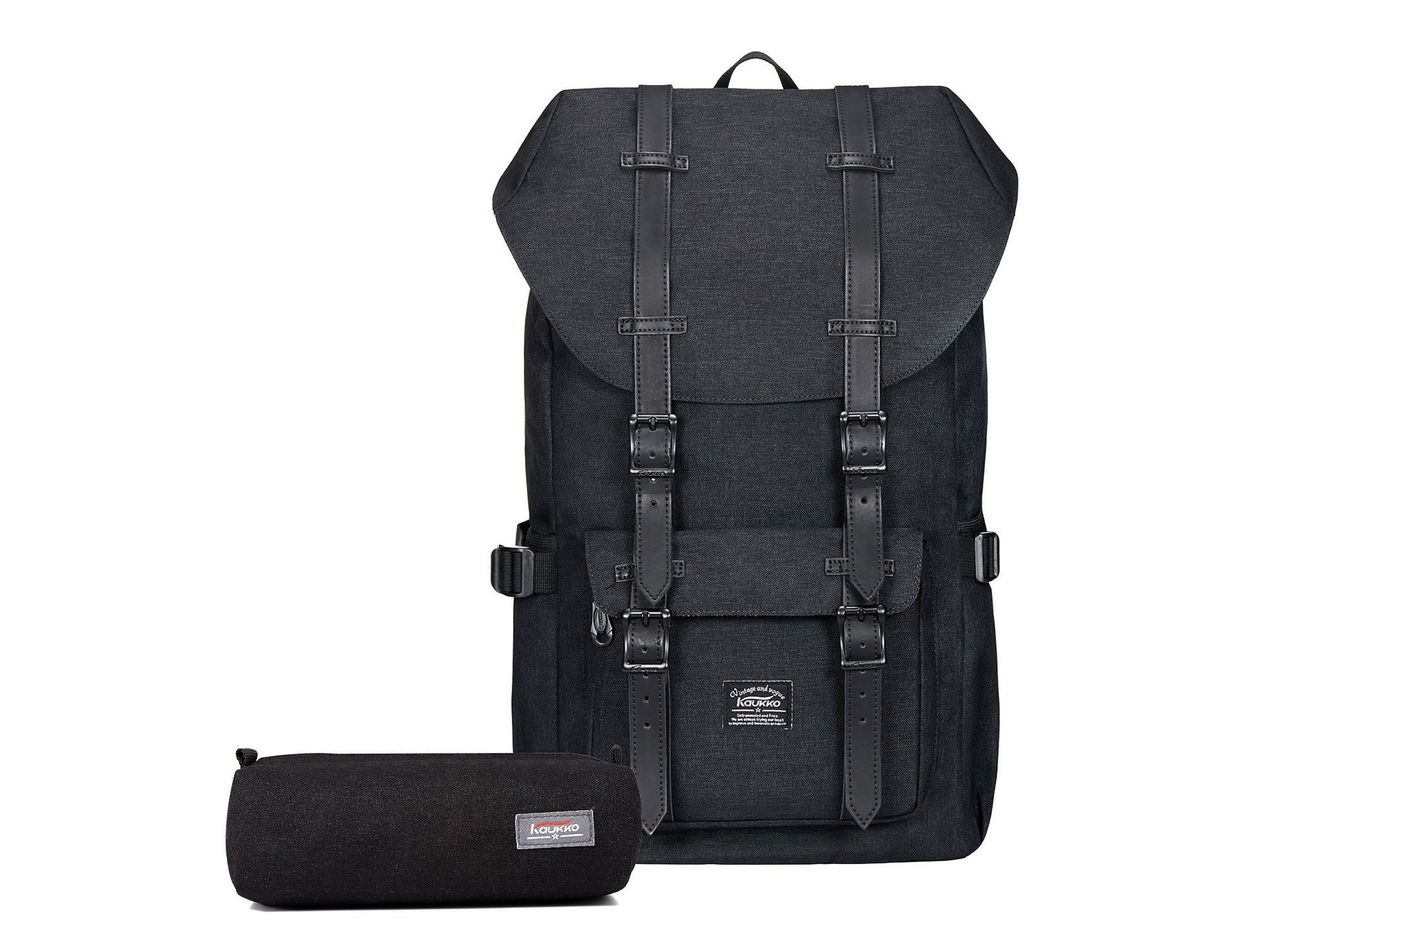 "Kaukko Laptop Outdoor Backpack (Fits 15"" Laptop)"